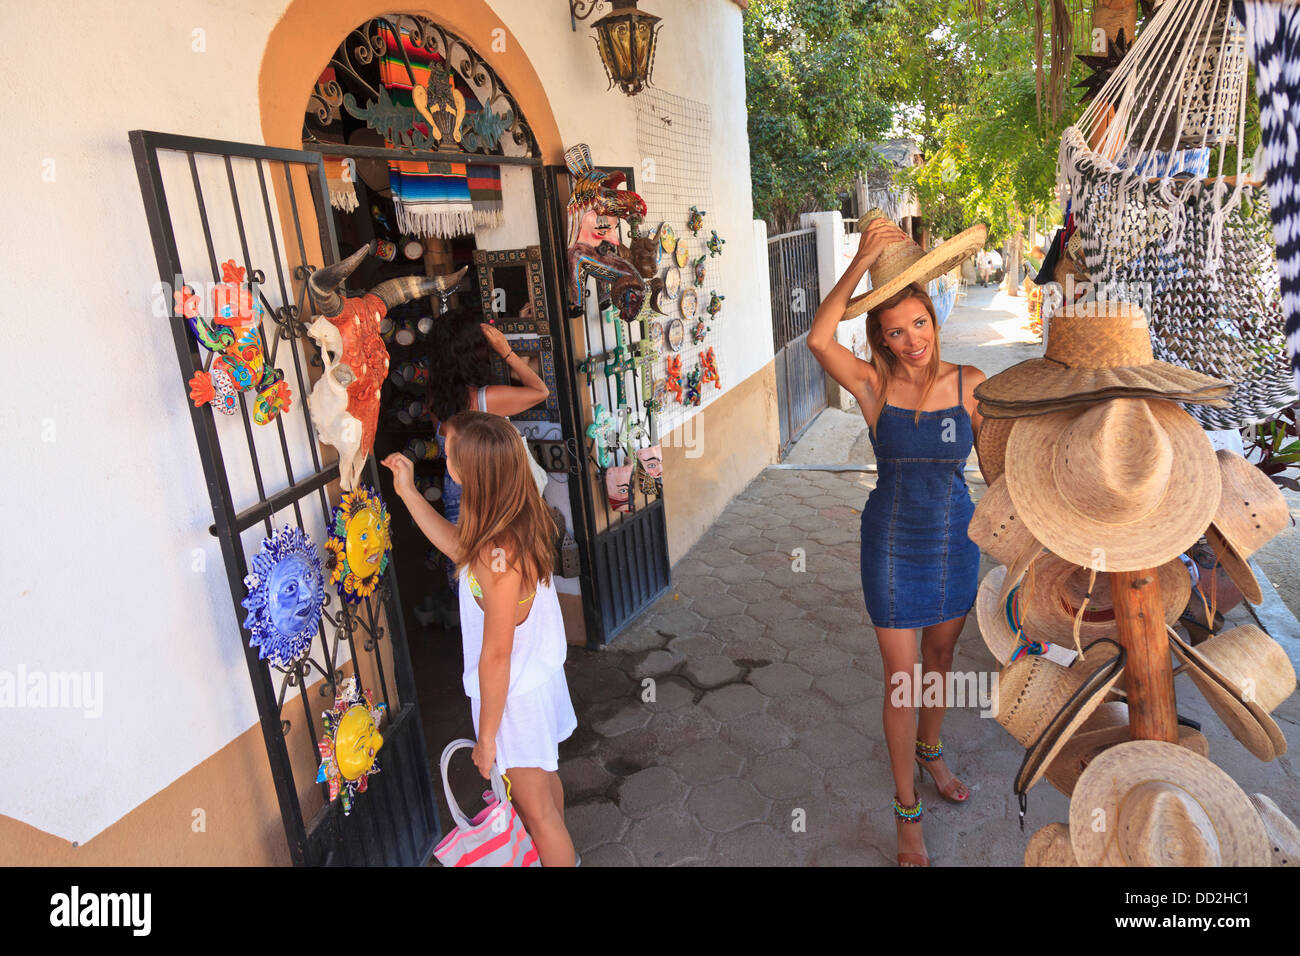 todos santos women Best todos santos b&bs on tripadvisor: find traveler reviews, candid photos, and prices for 16 bed and breakfasts in todos santos, mexico.